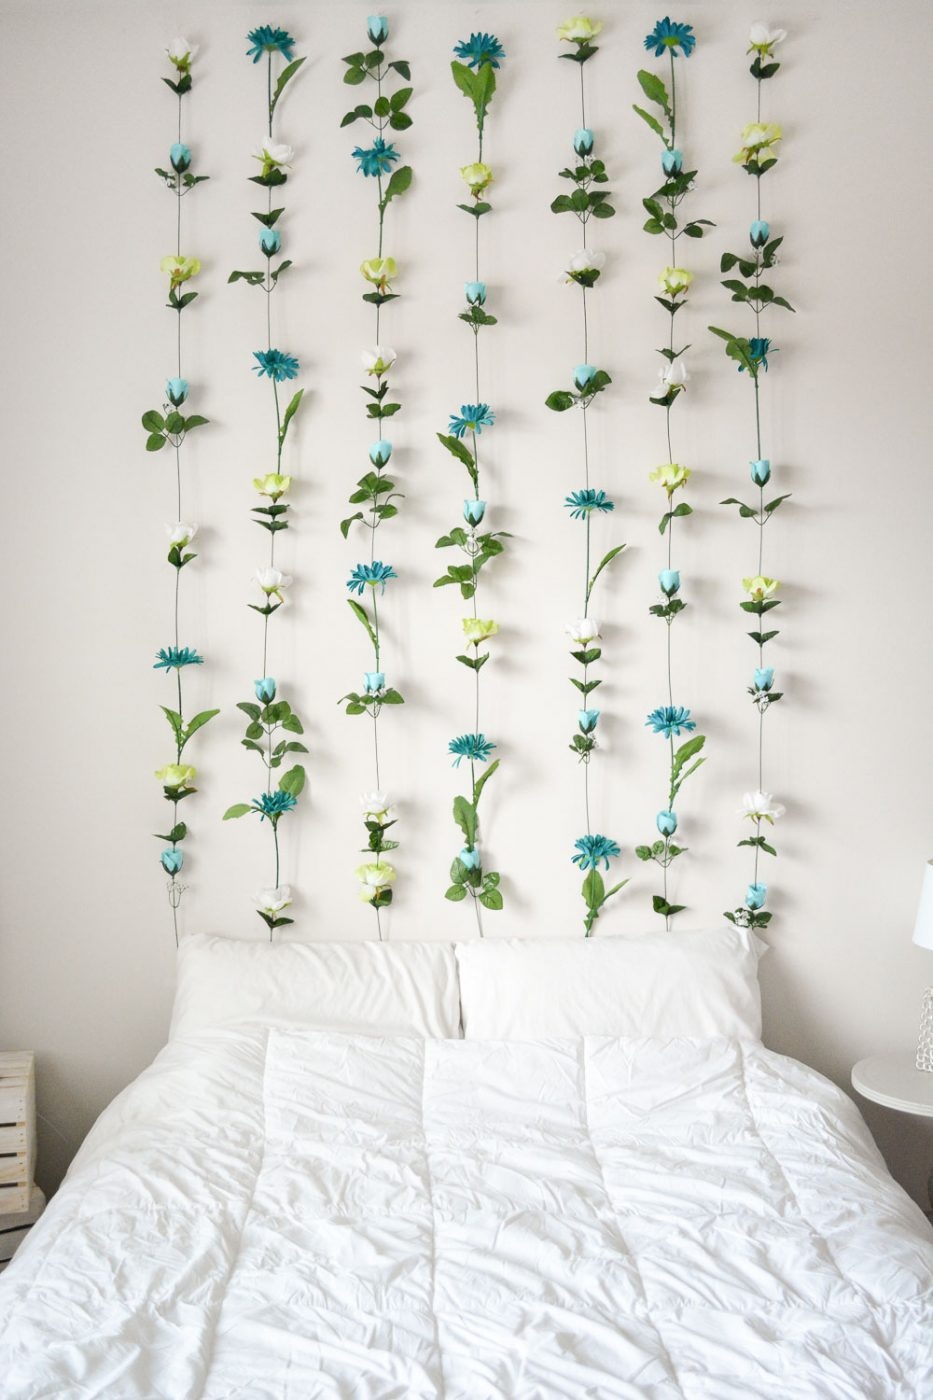 Diy flower wall headboard home decor sweet teal for Home made decorative items